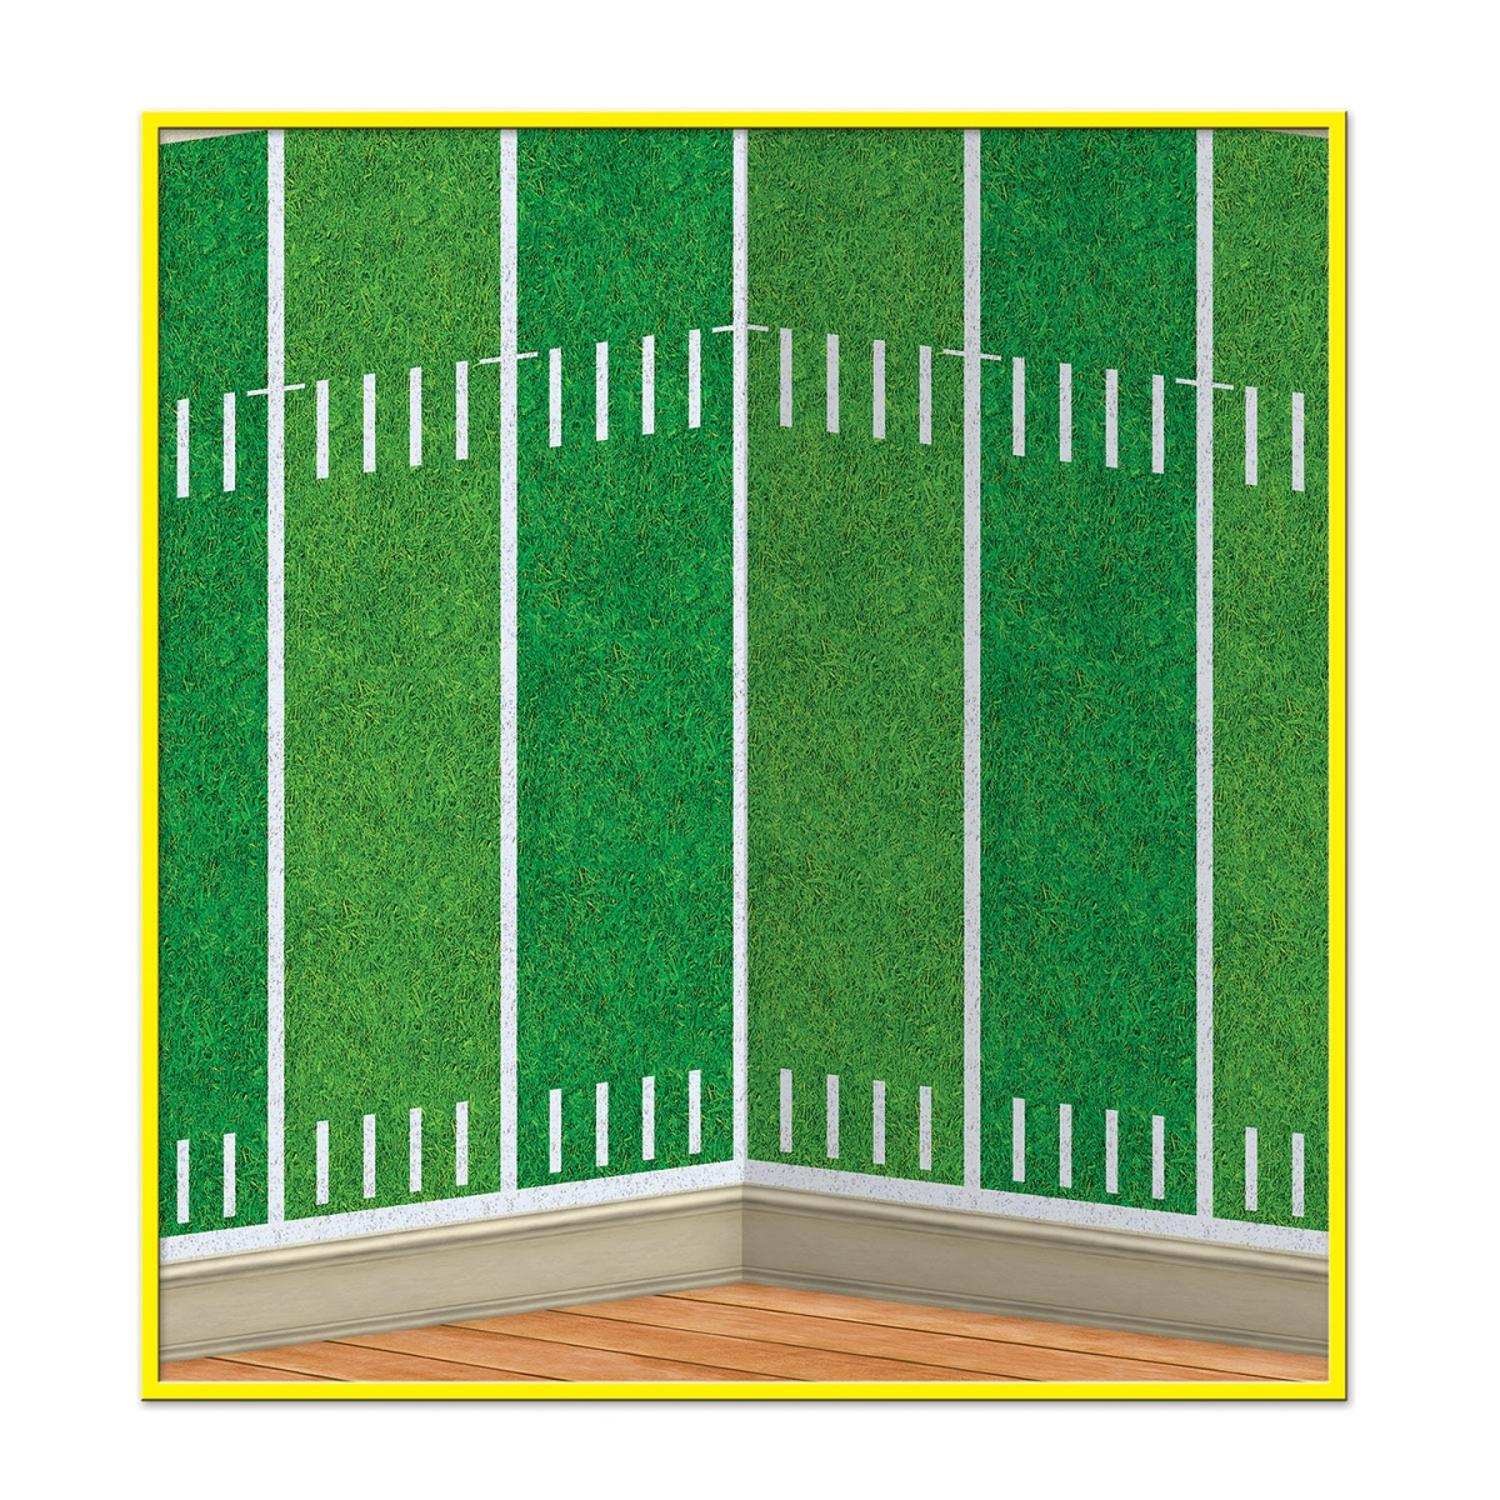 Pack of 6 Green Football Field Photo Backdrop Party Decorations 30'